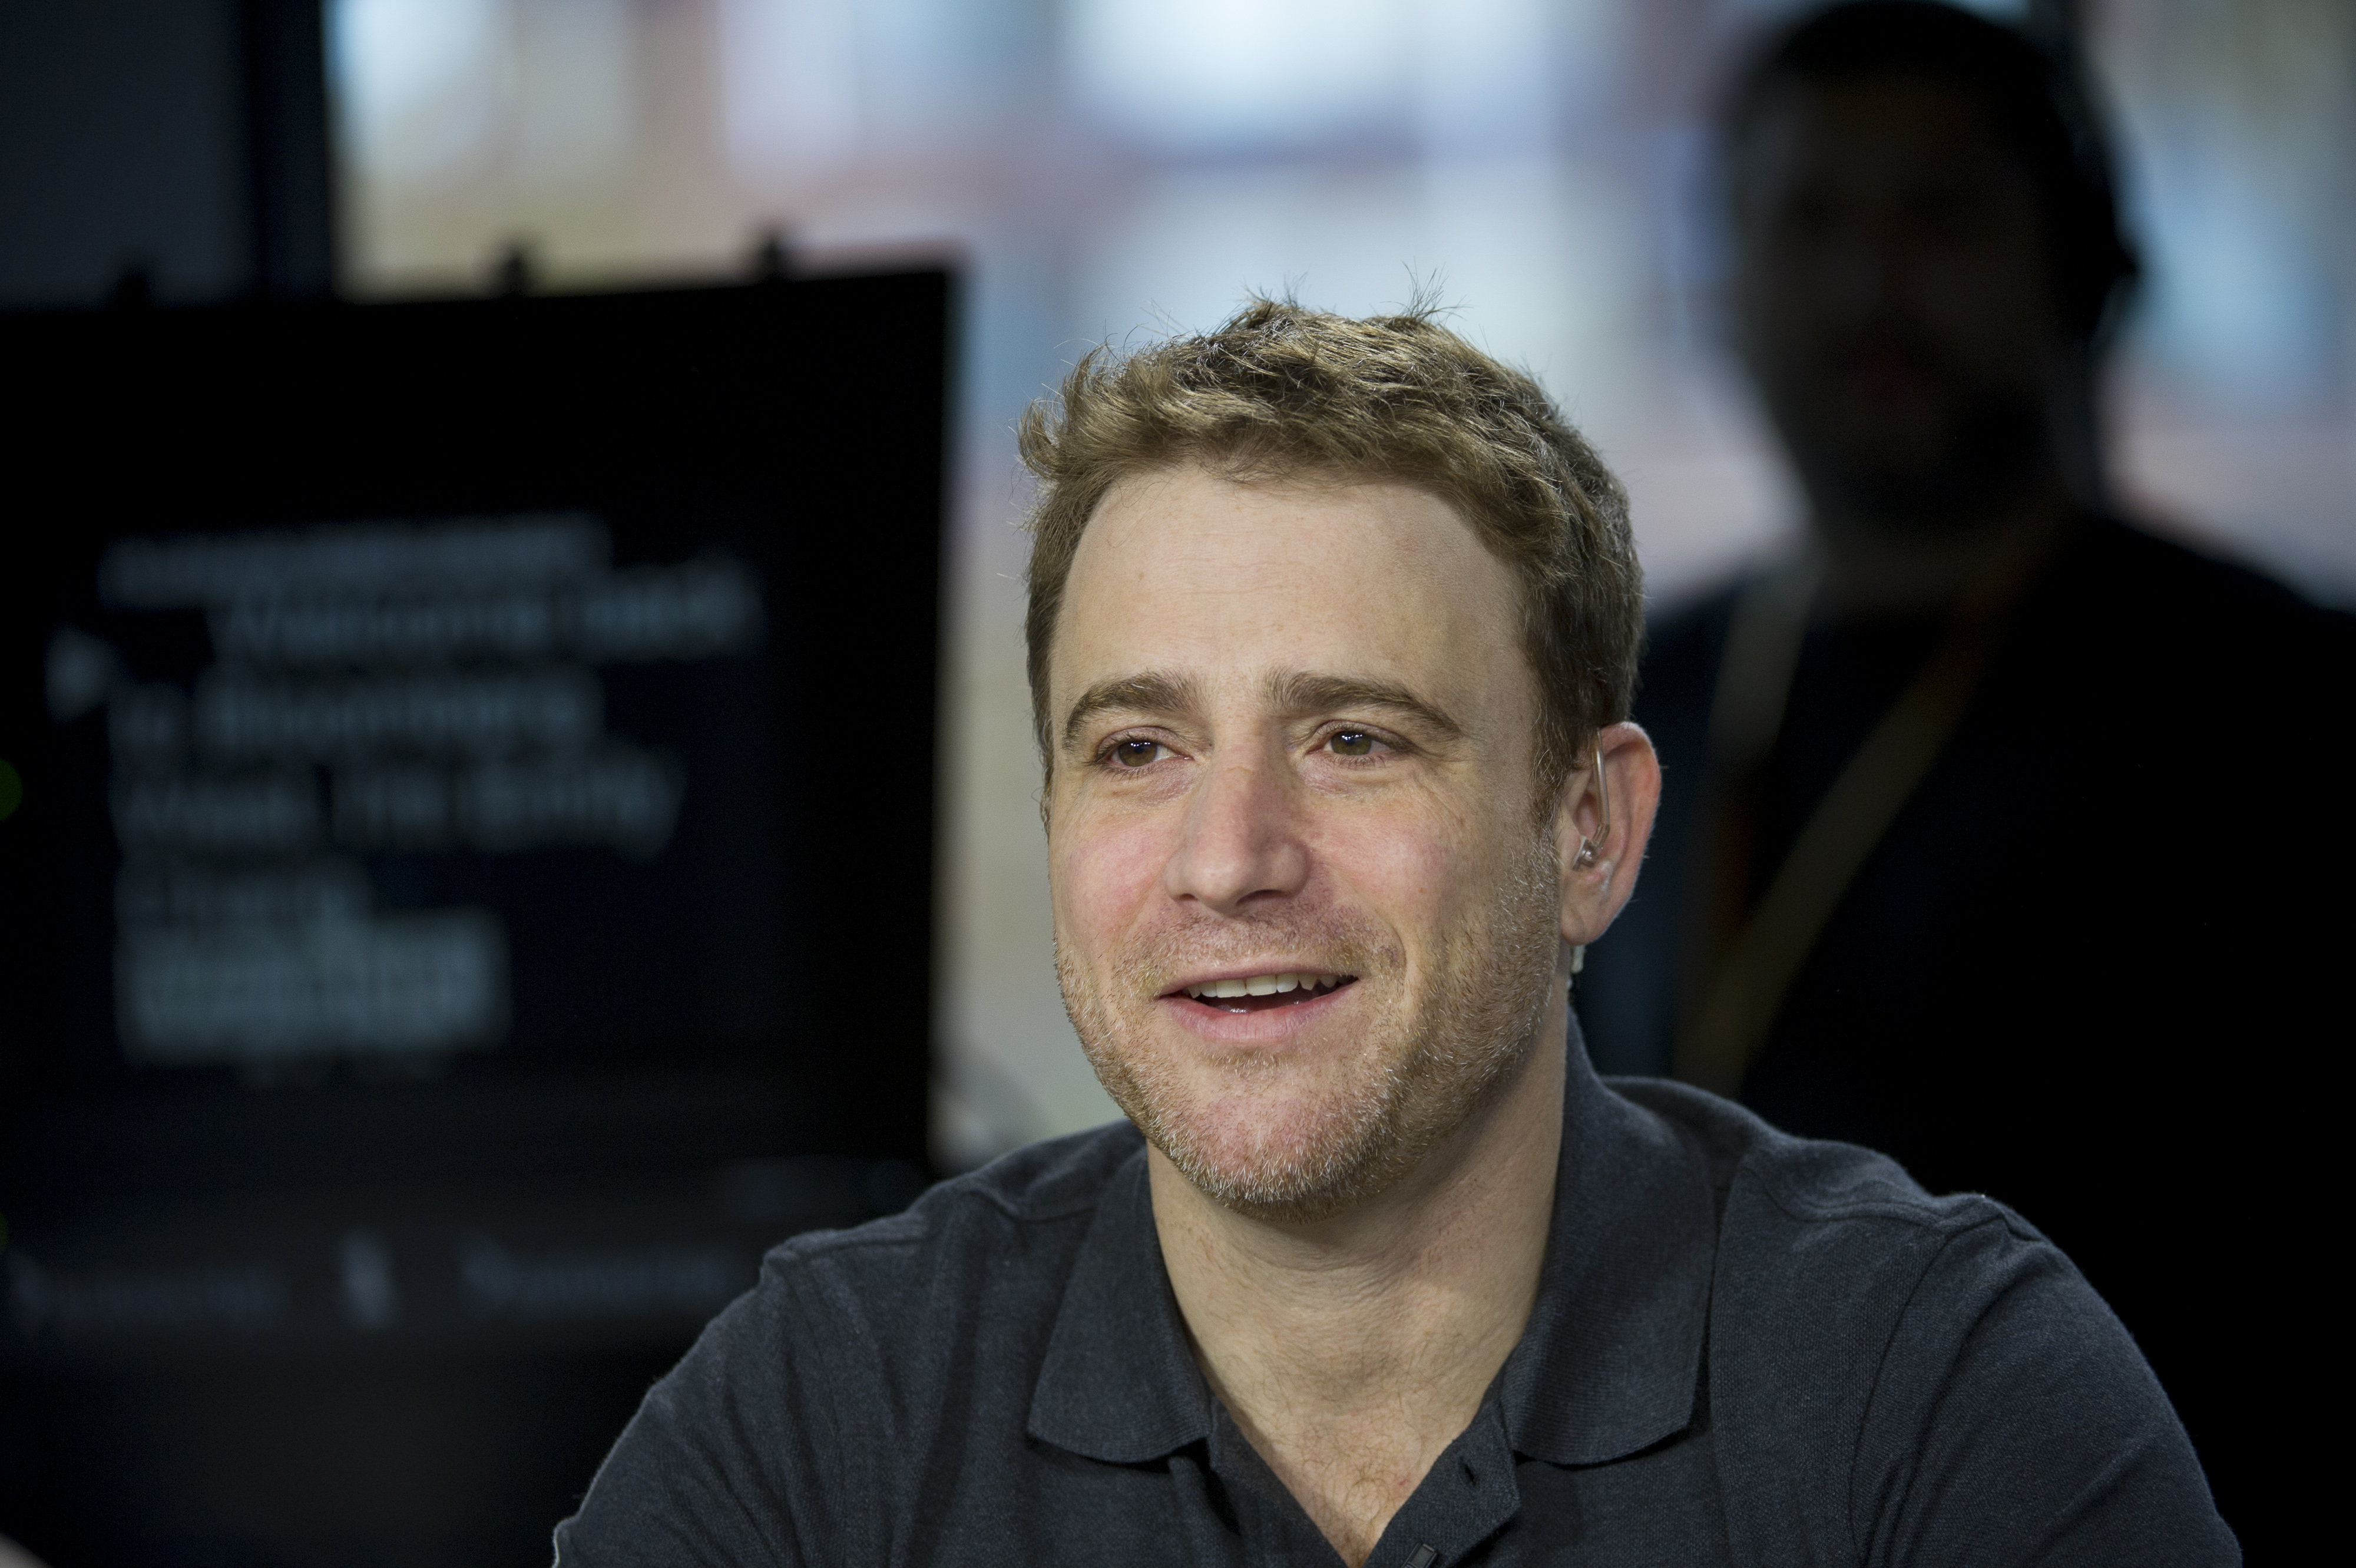 Slack CEO Stuart Butterfield